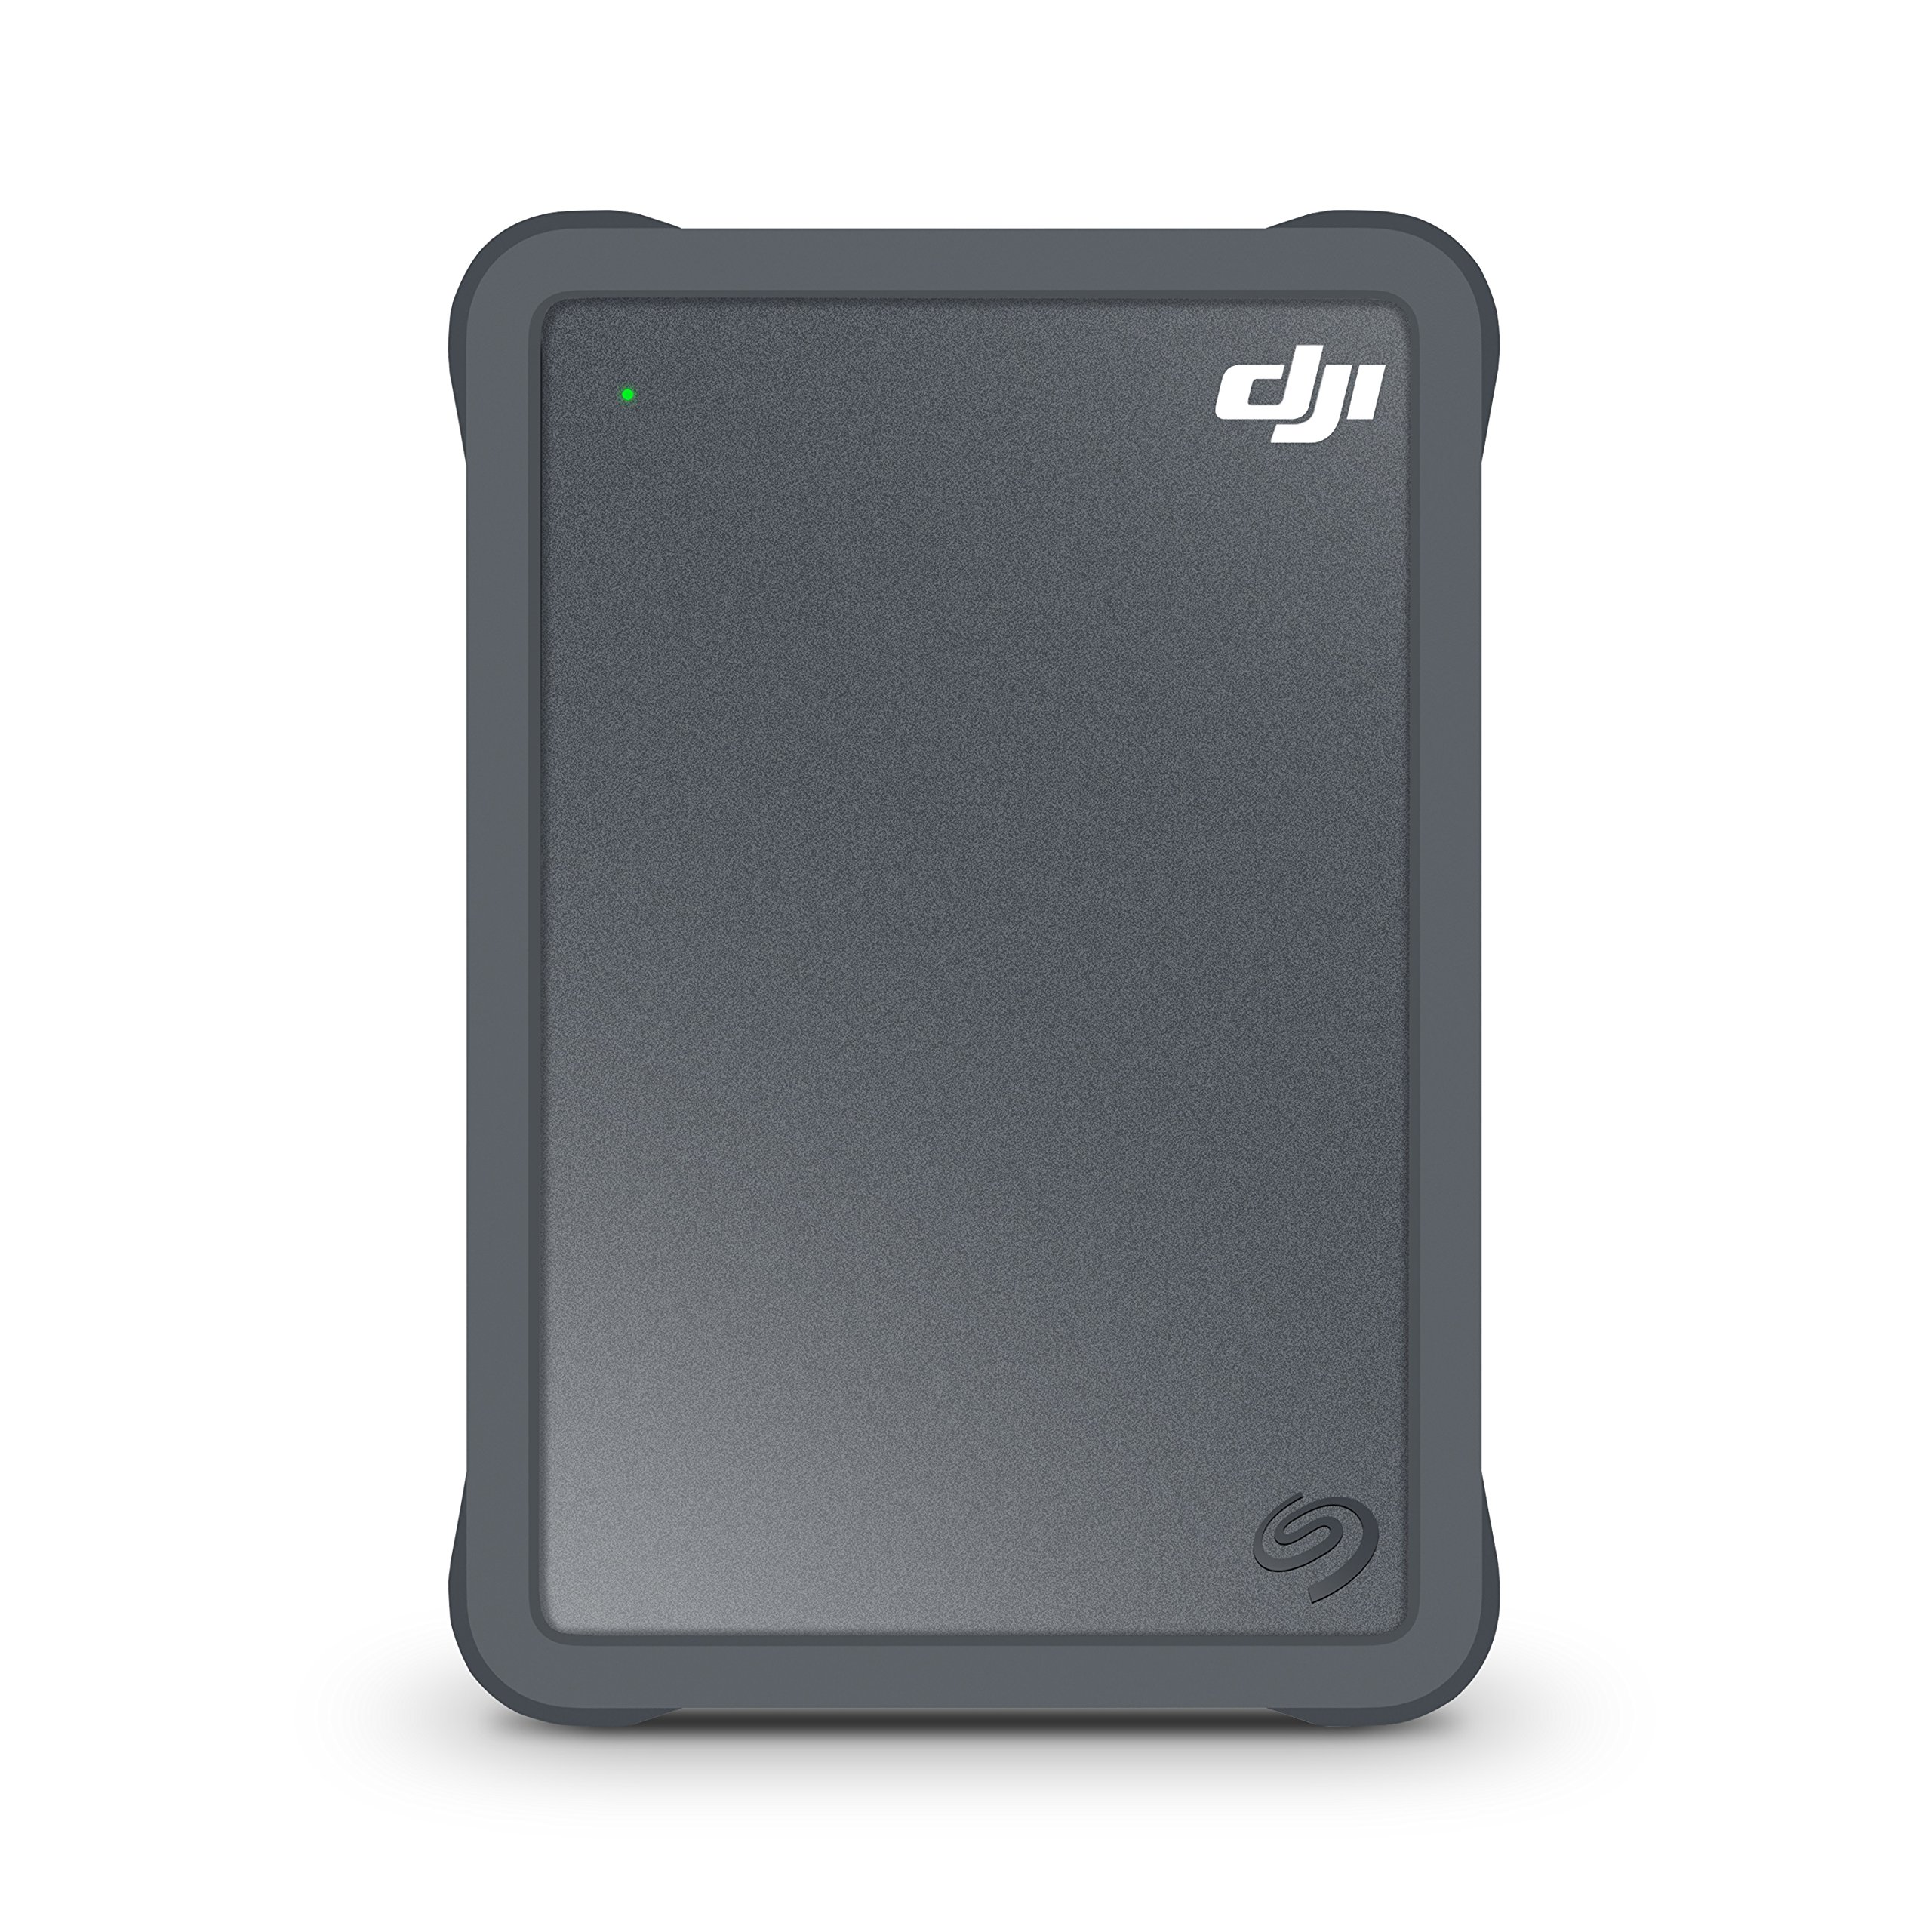 Seagate DJI Fly Drive for Laptops- Portable Drive with Protective Bumper, micro SD Card Slot, and USB-C to USB-C Cable + 2 mo Adobe Premier Pro CC (STGH2000400)